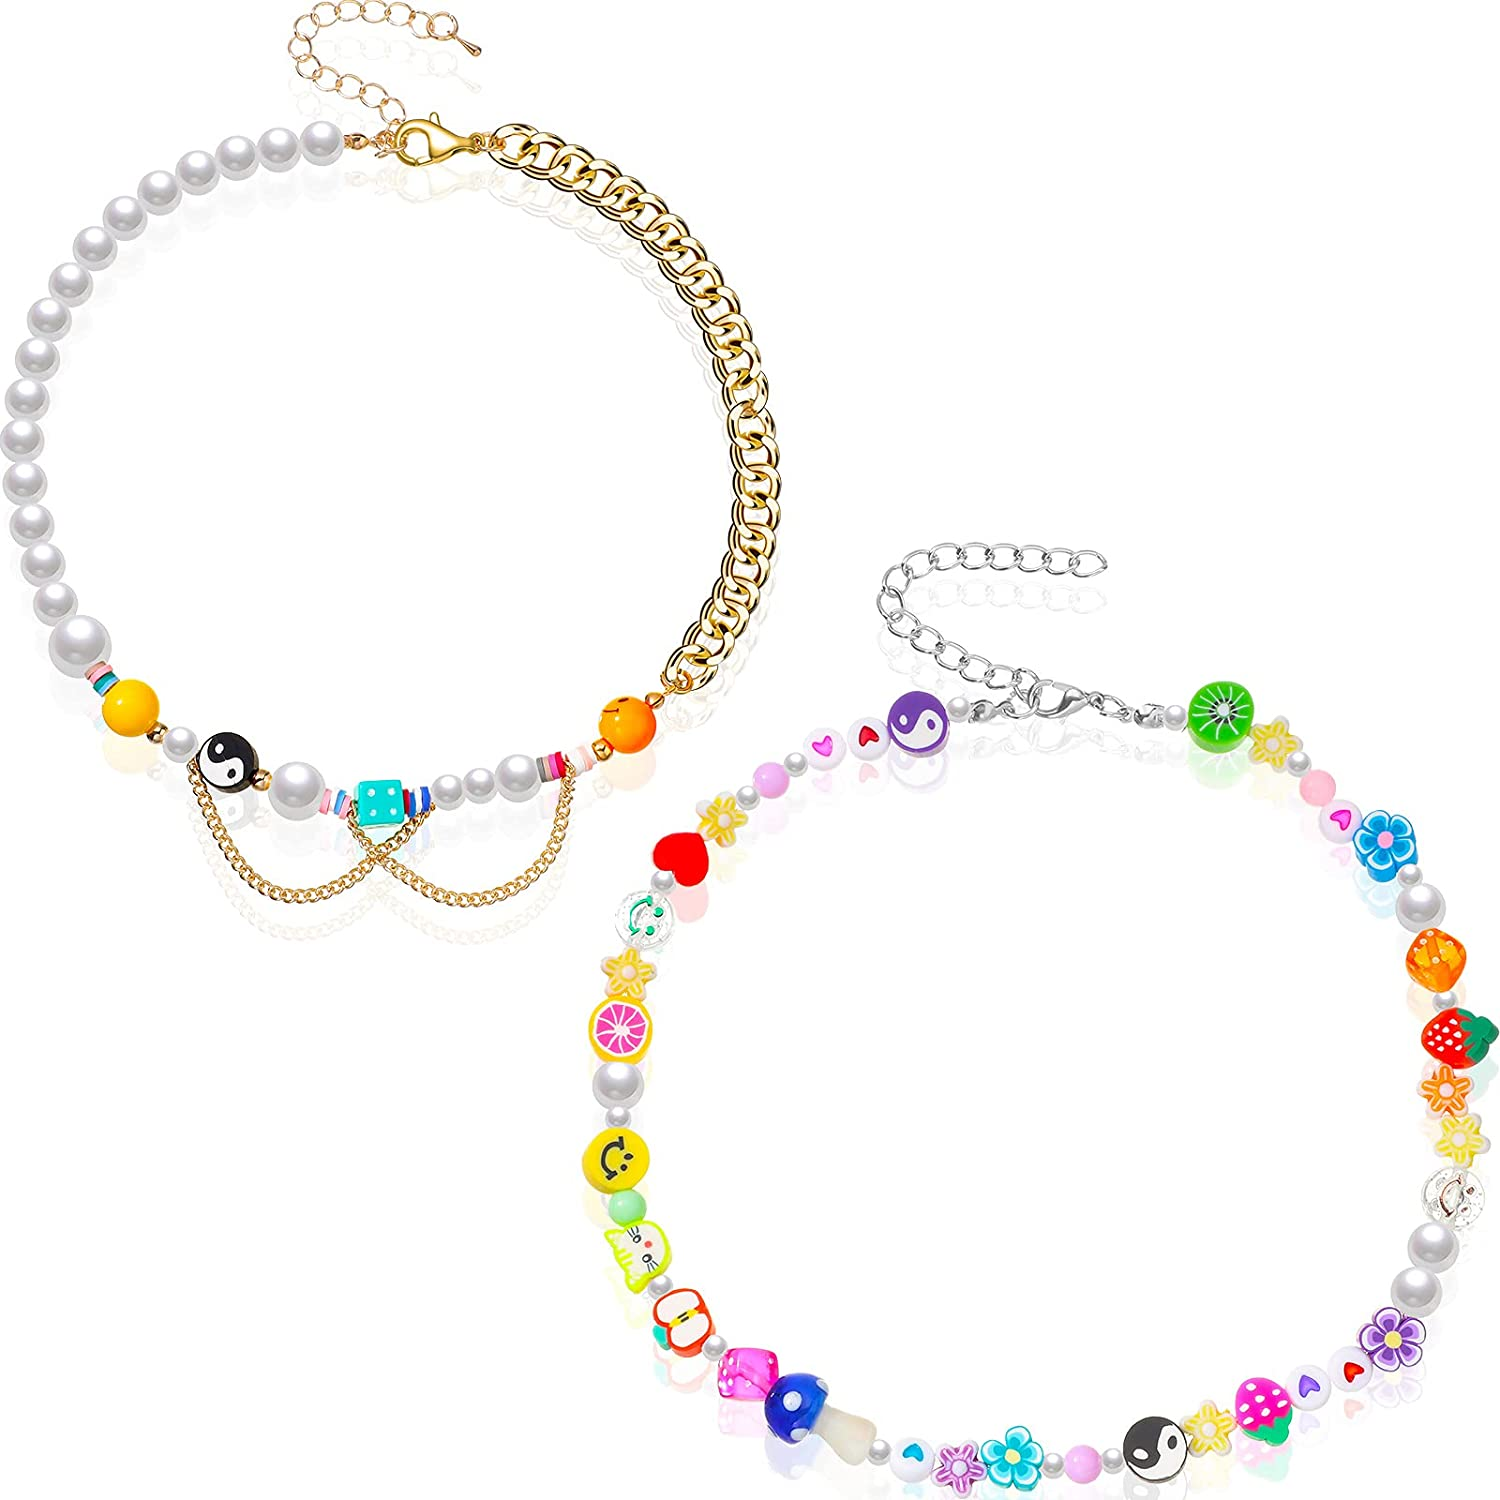 2 Pieces Beaded Necklace Y2K Smile Face Yin Yang Colorful Artificial Pearl Beads Choker Necklace Boho Cute Necklace Vsco Handmade Choker for Girls Women